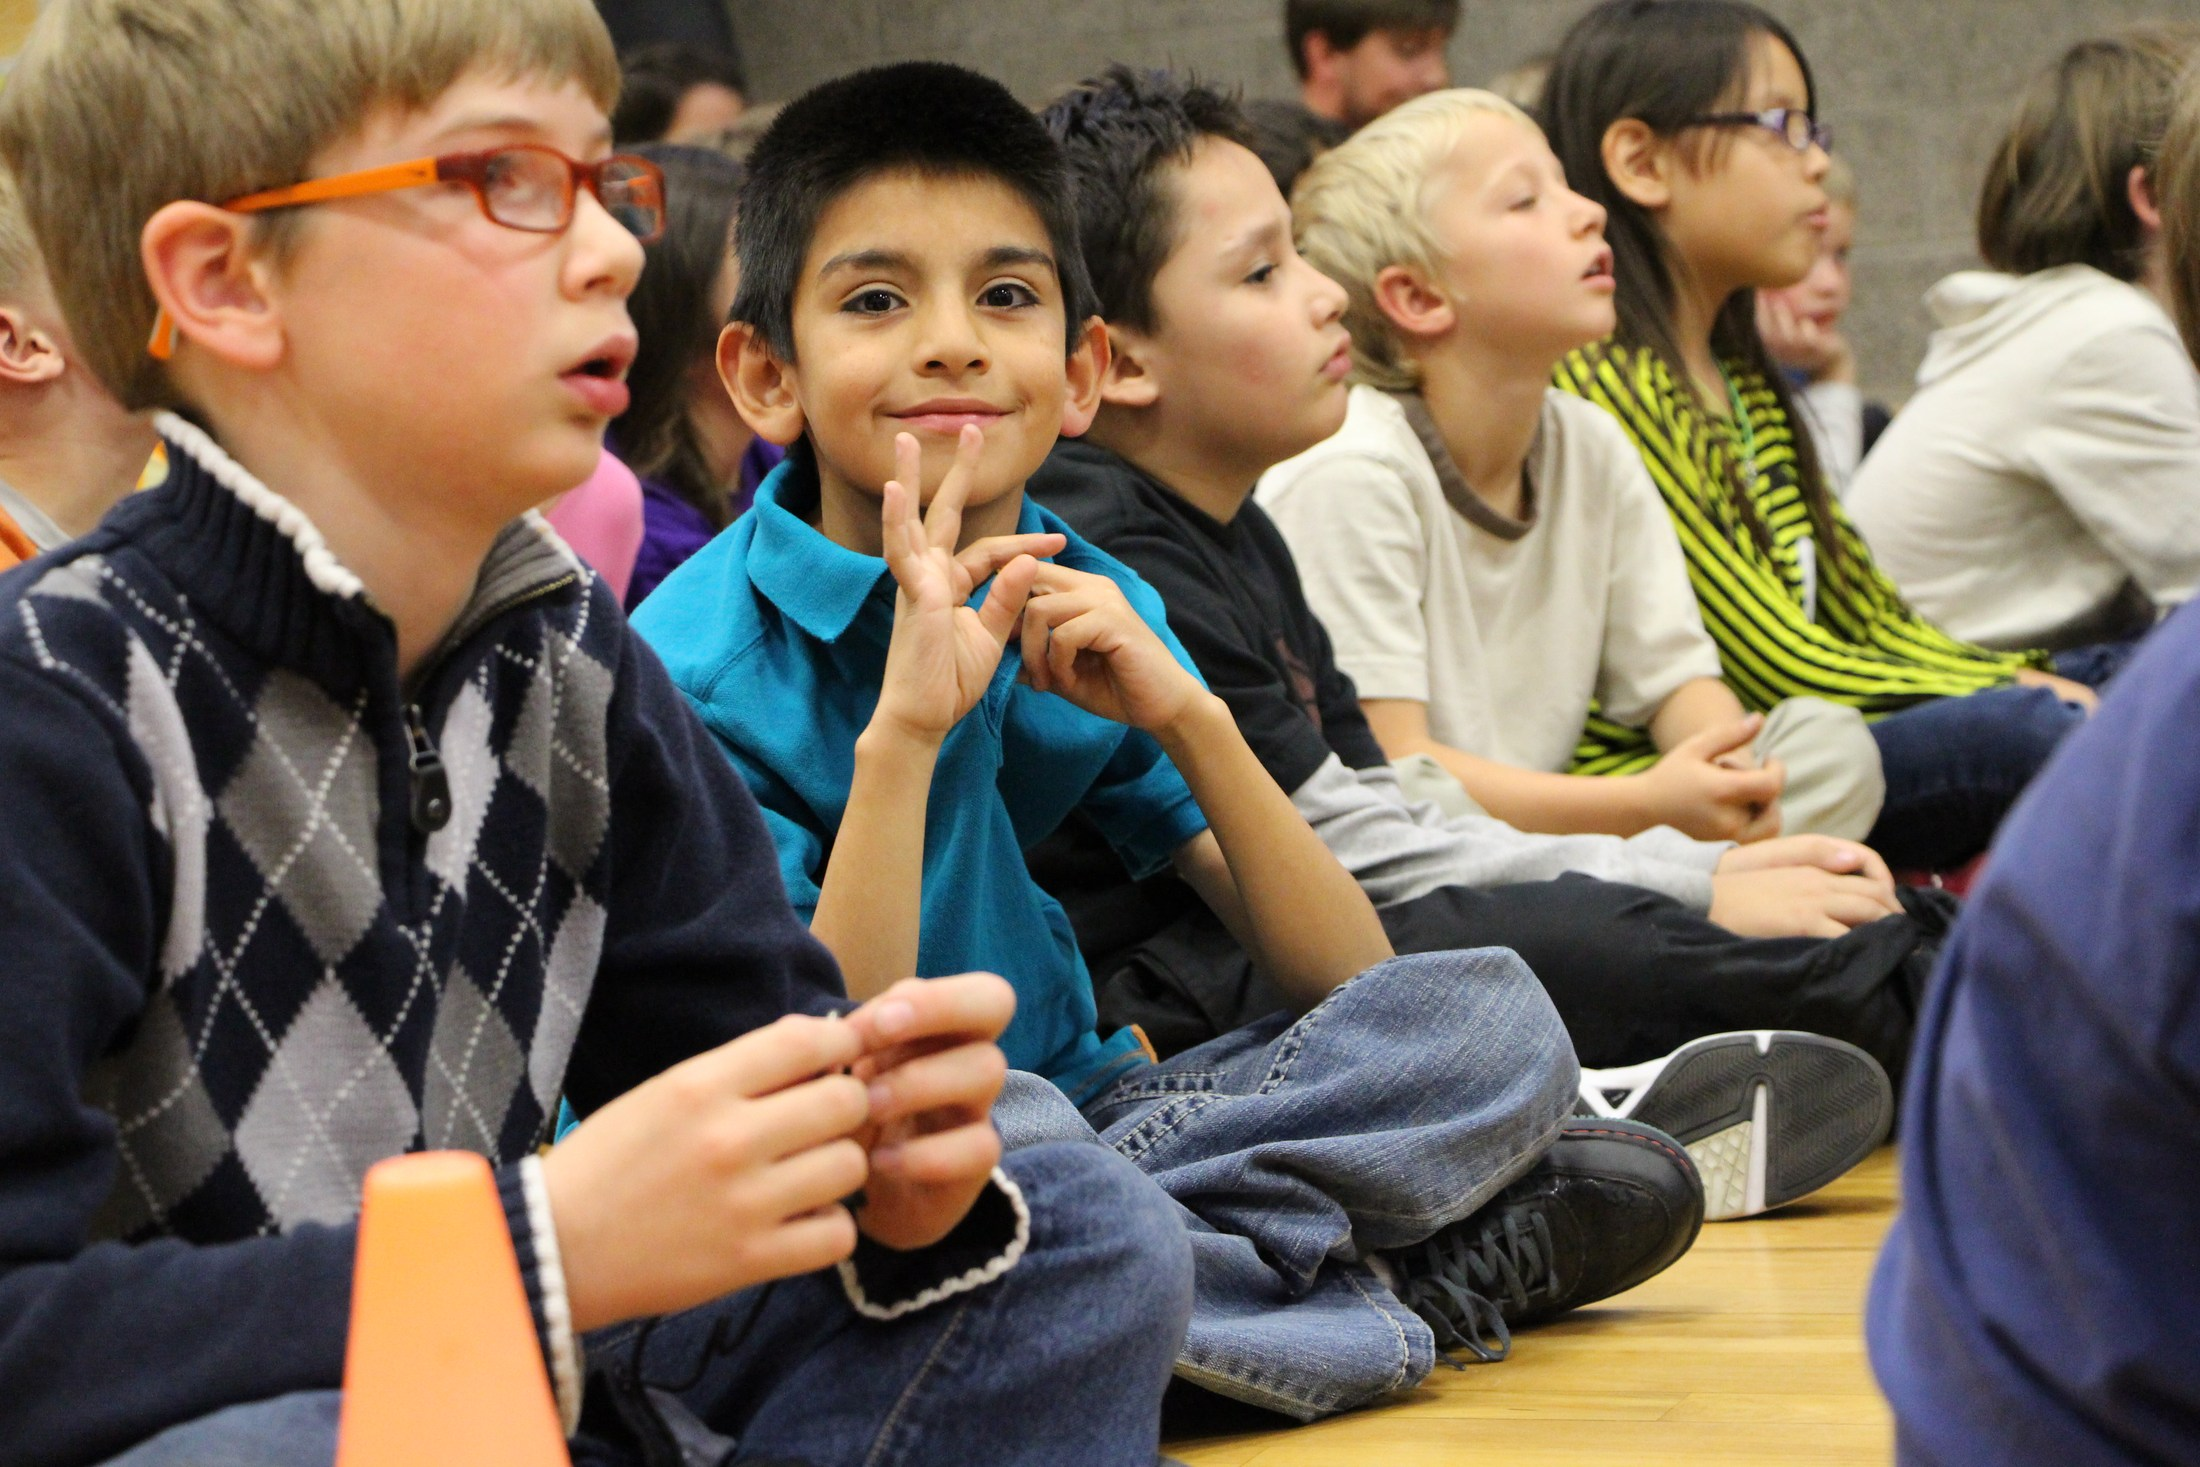 Students sit in a school assembly.